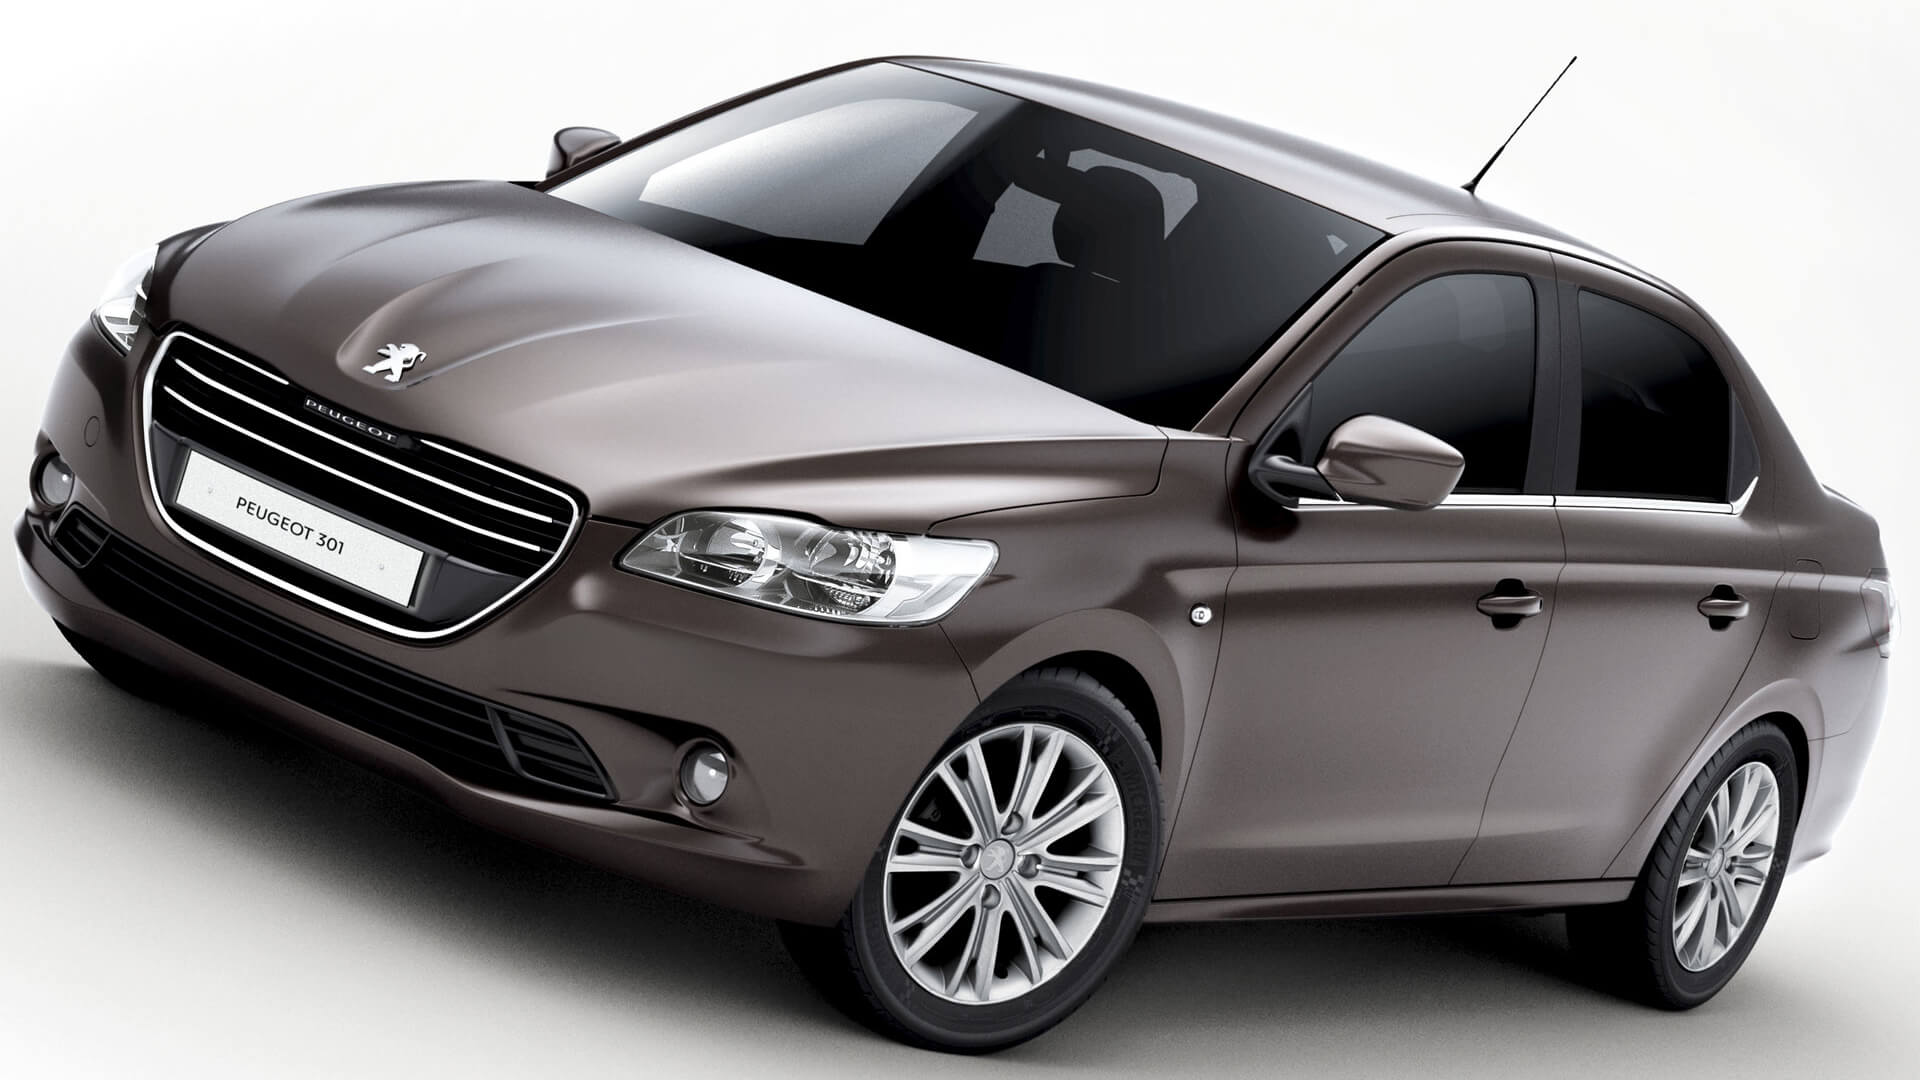 peugeot 301 wallpaper background, wallpapers